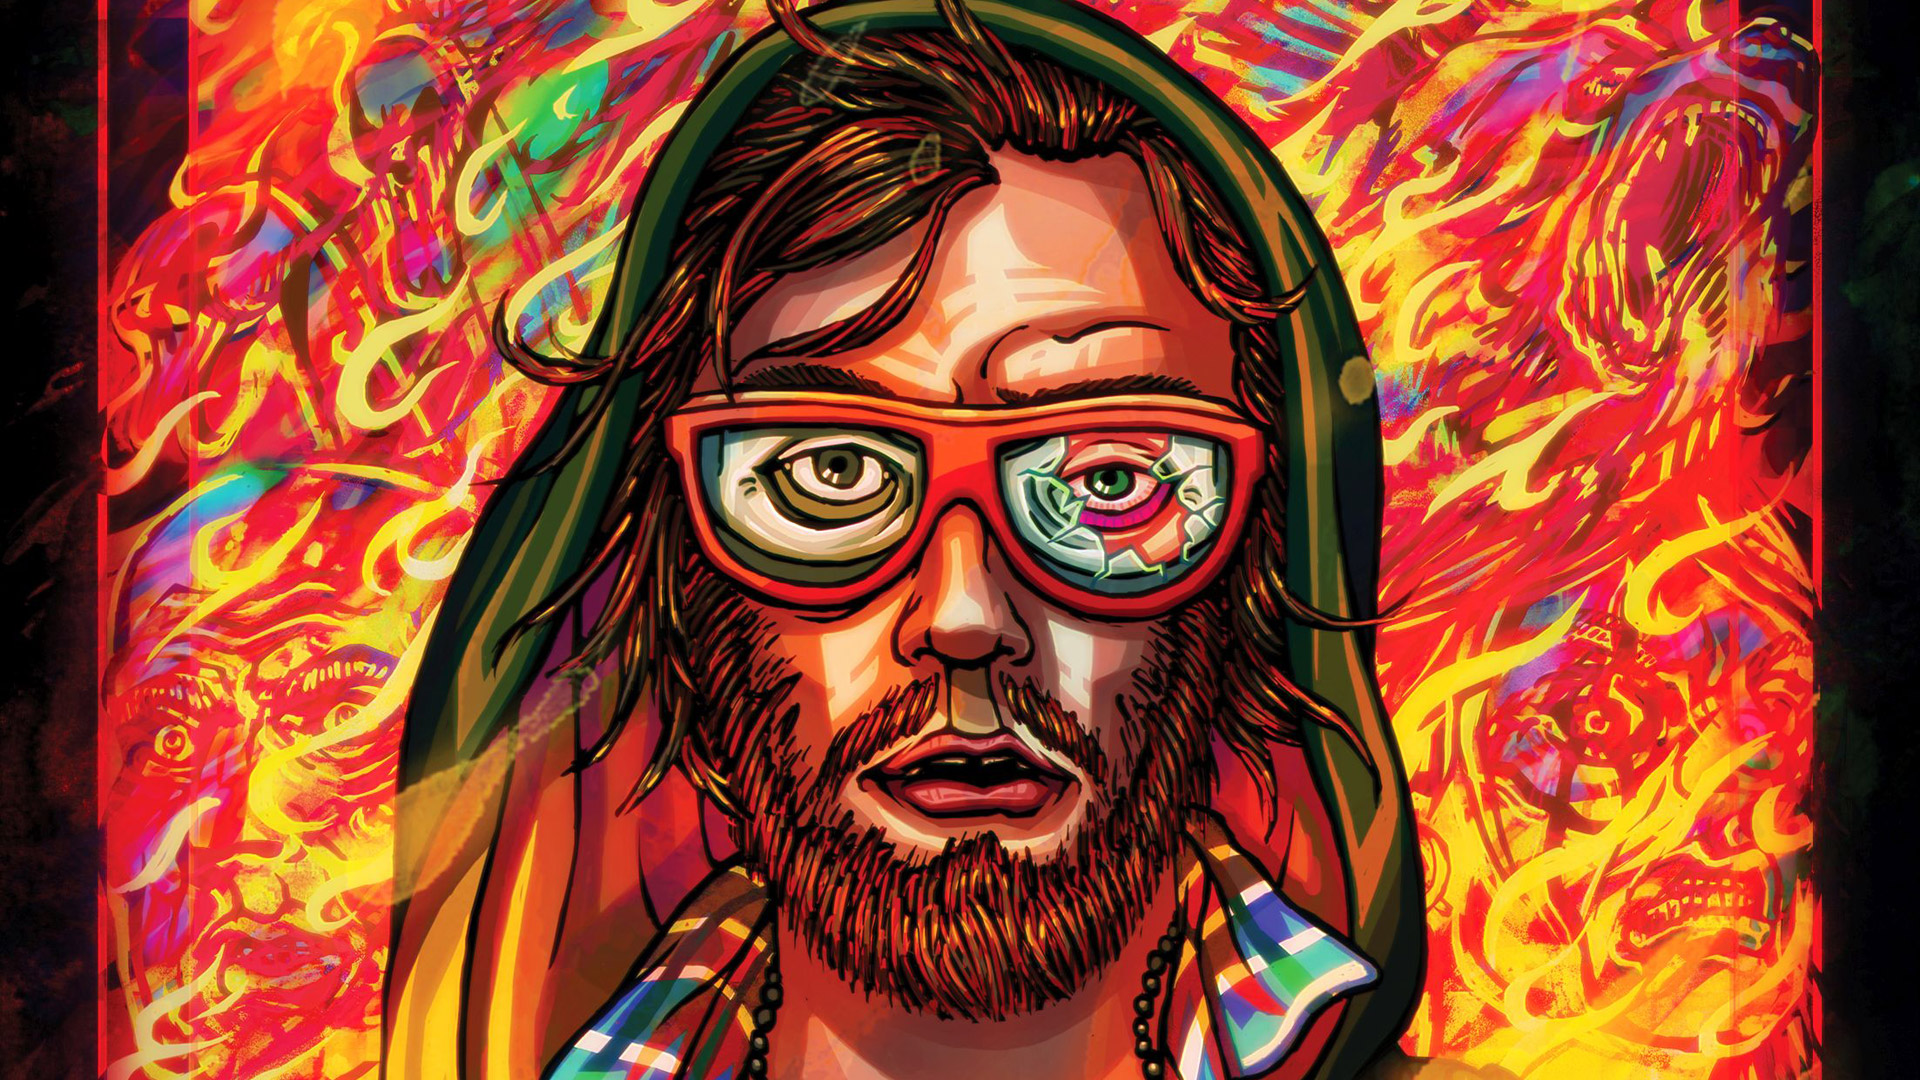 Hotline Miami 2: Wrong Number Wallpaper in 1920x1080